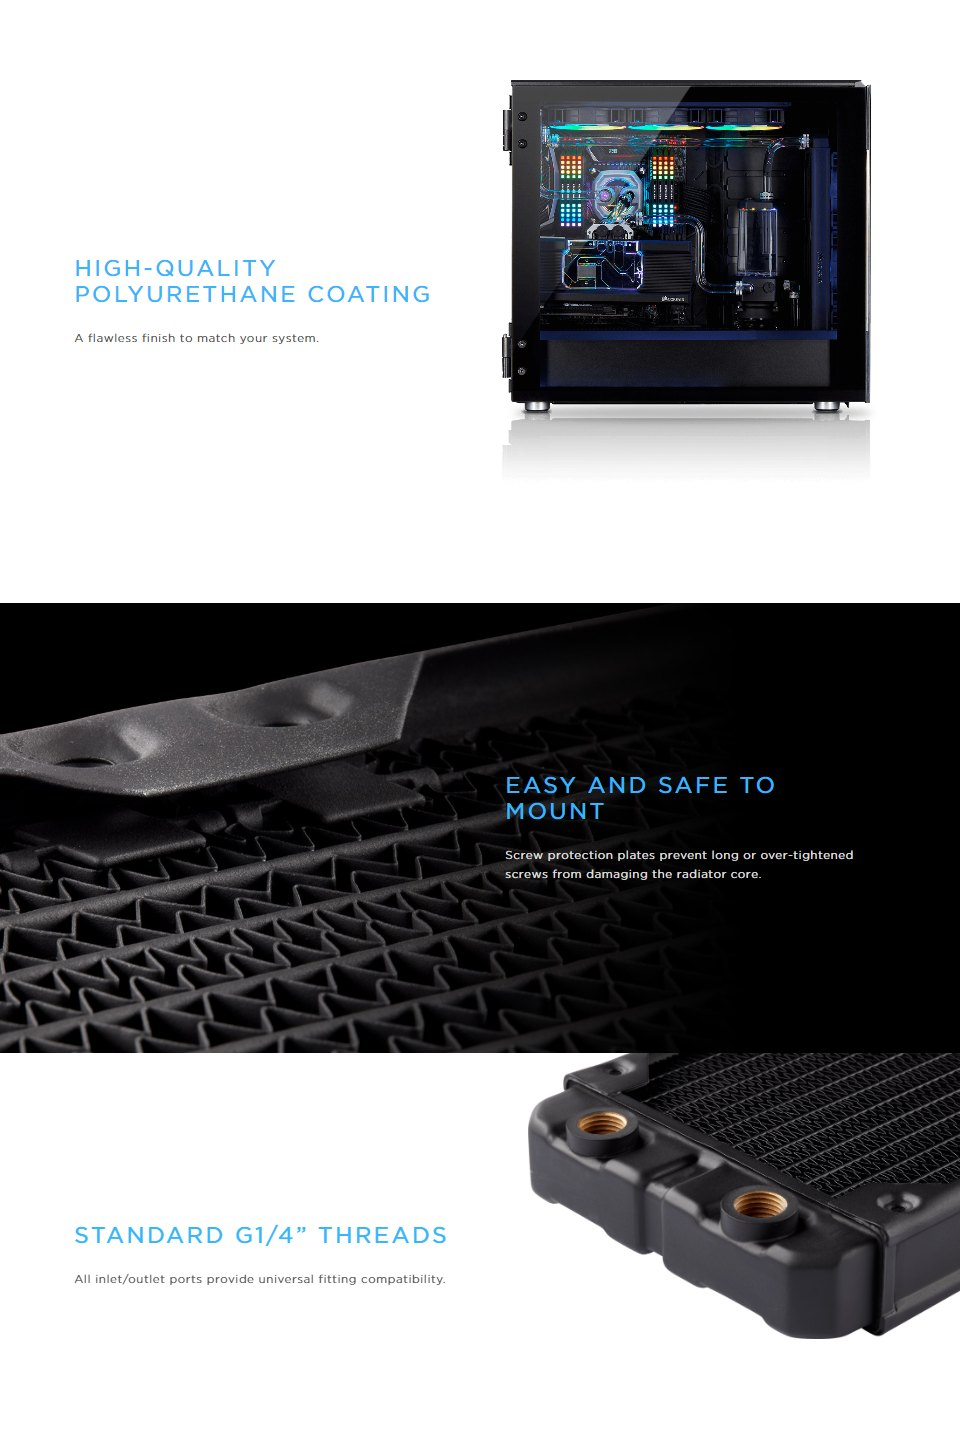 Corsair Hydro X Series XR5 240mm Water Cooling Radiator features 2